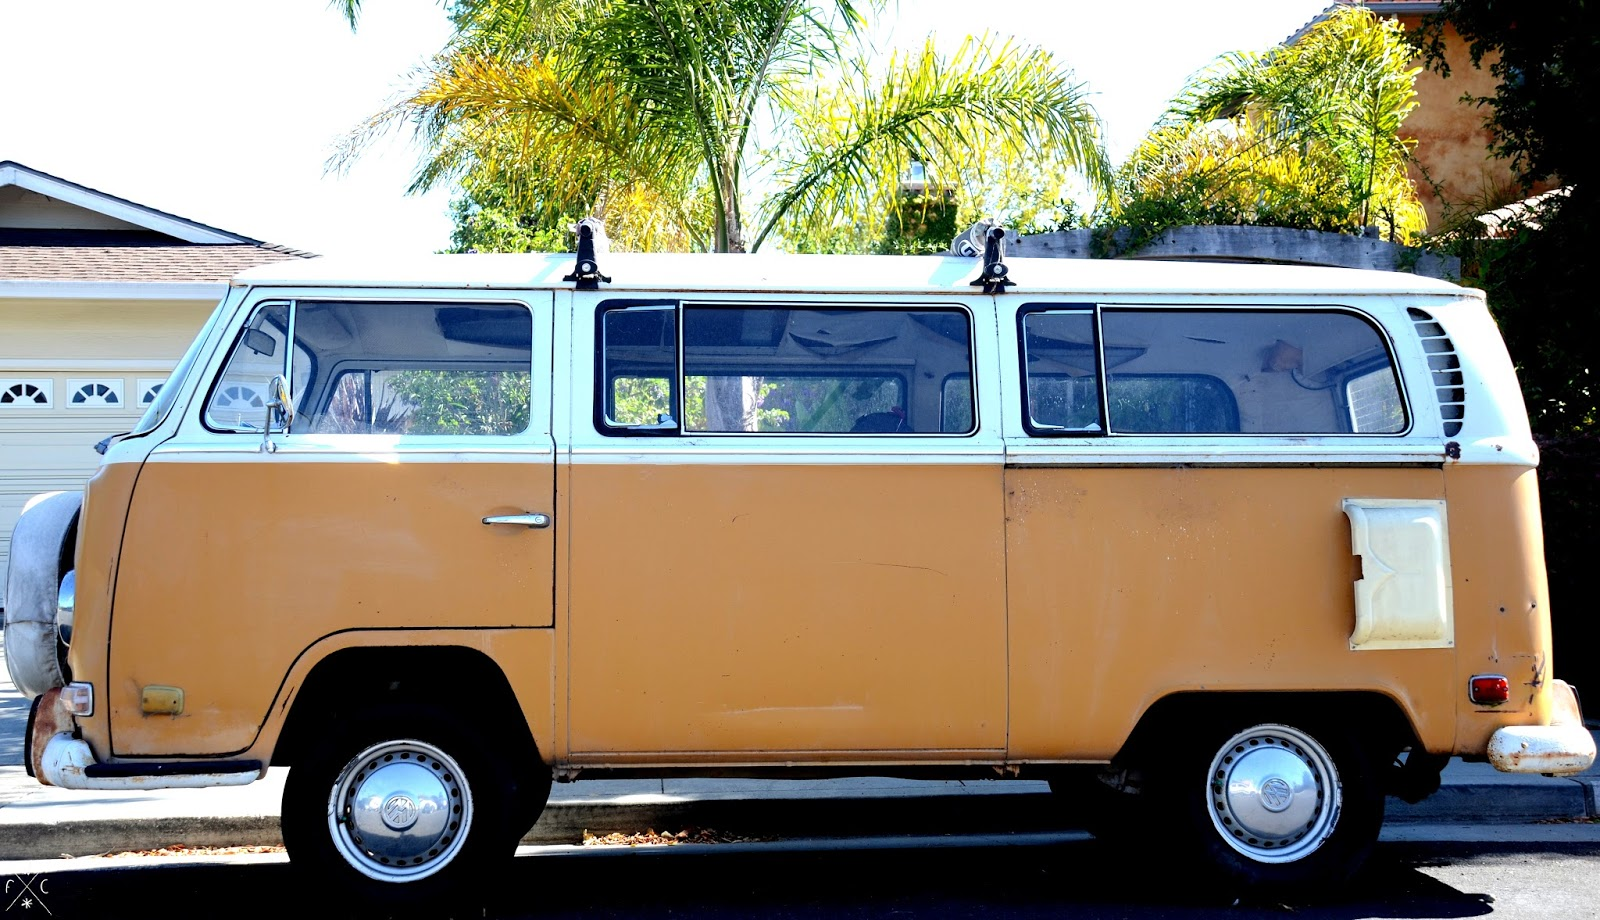 Yellow van Volkswagen - Santa Cruz, California